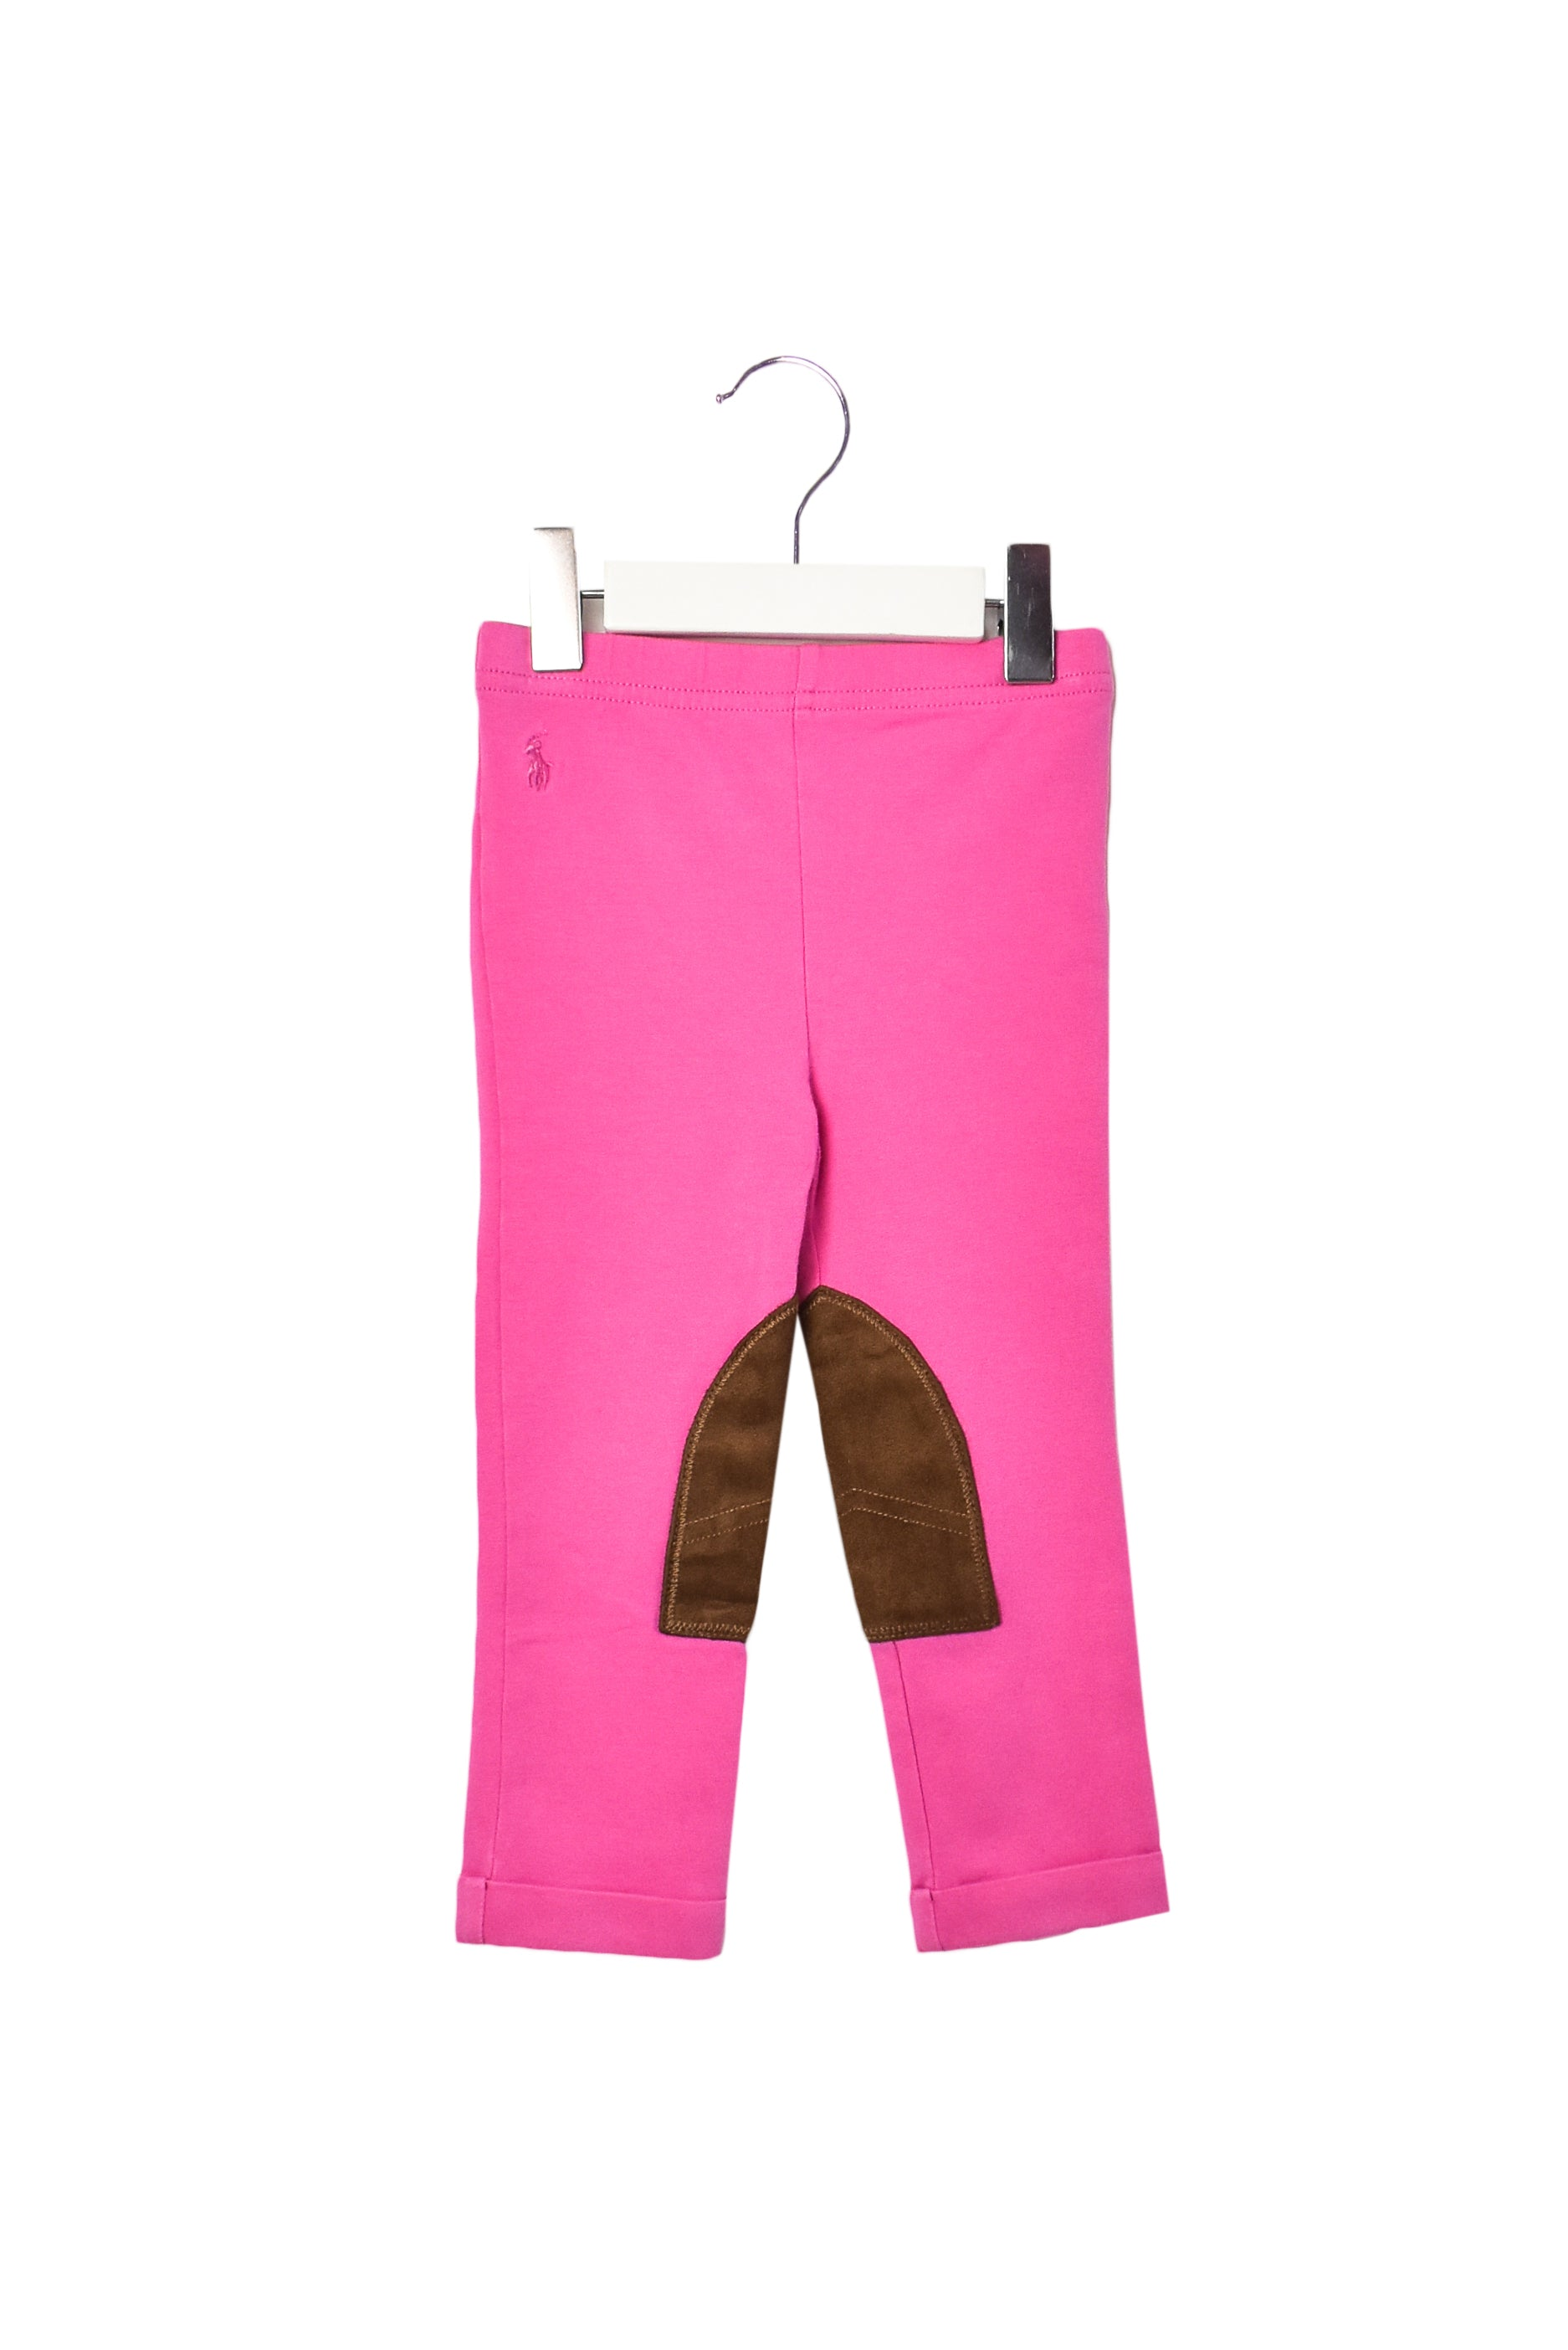 10006643 Ralph Lauren Kids~Leggings 24M at Retykle